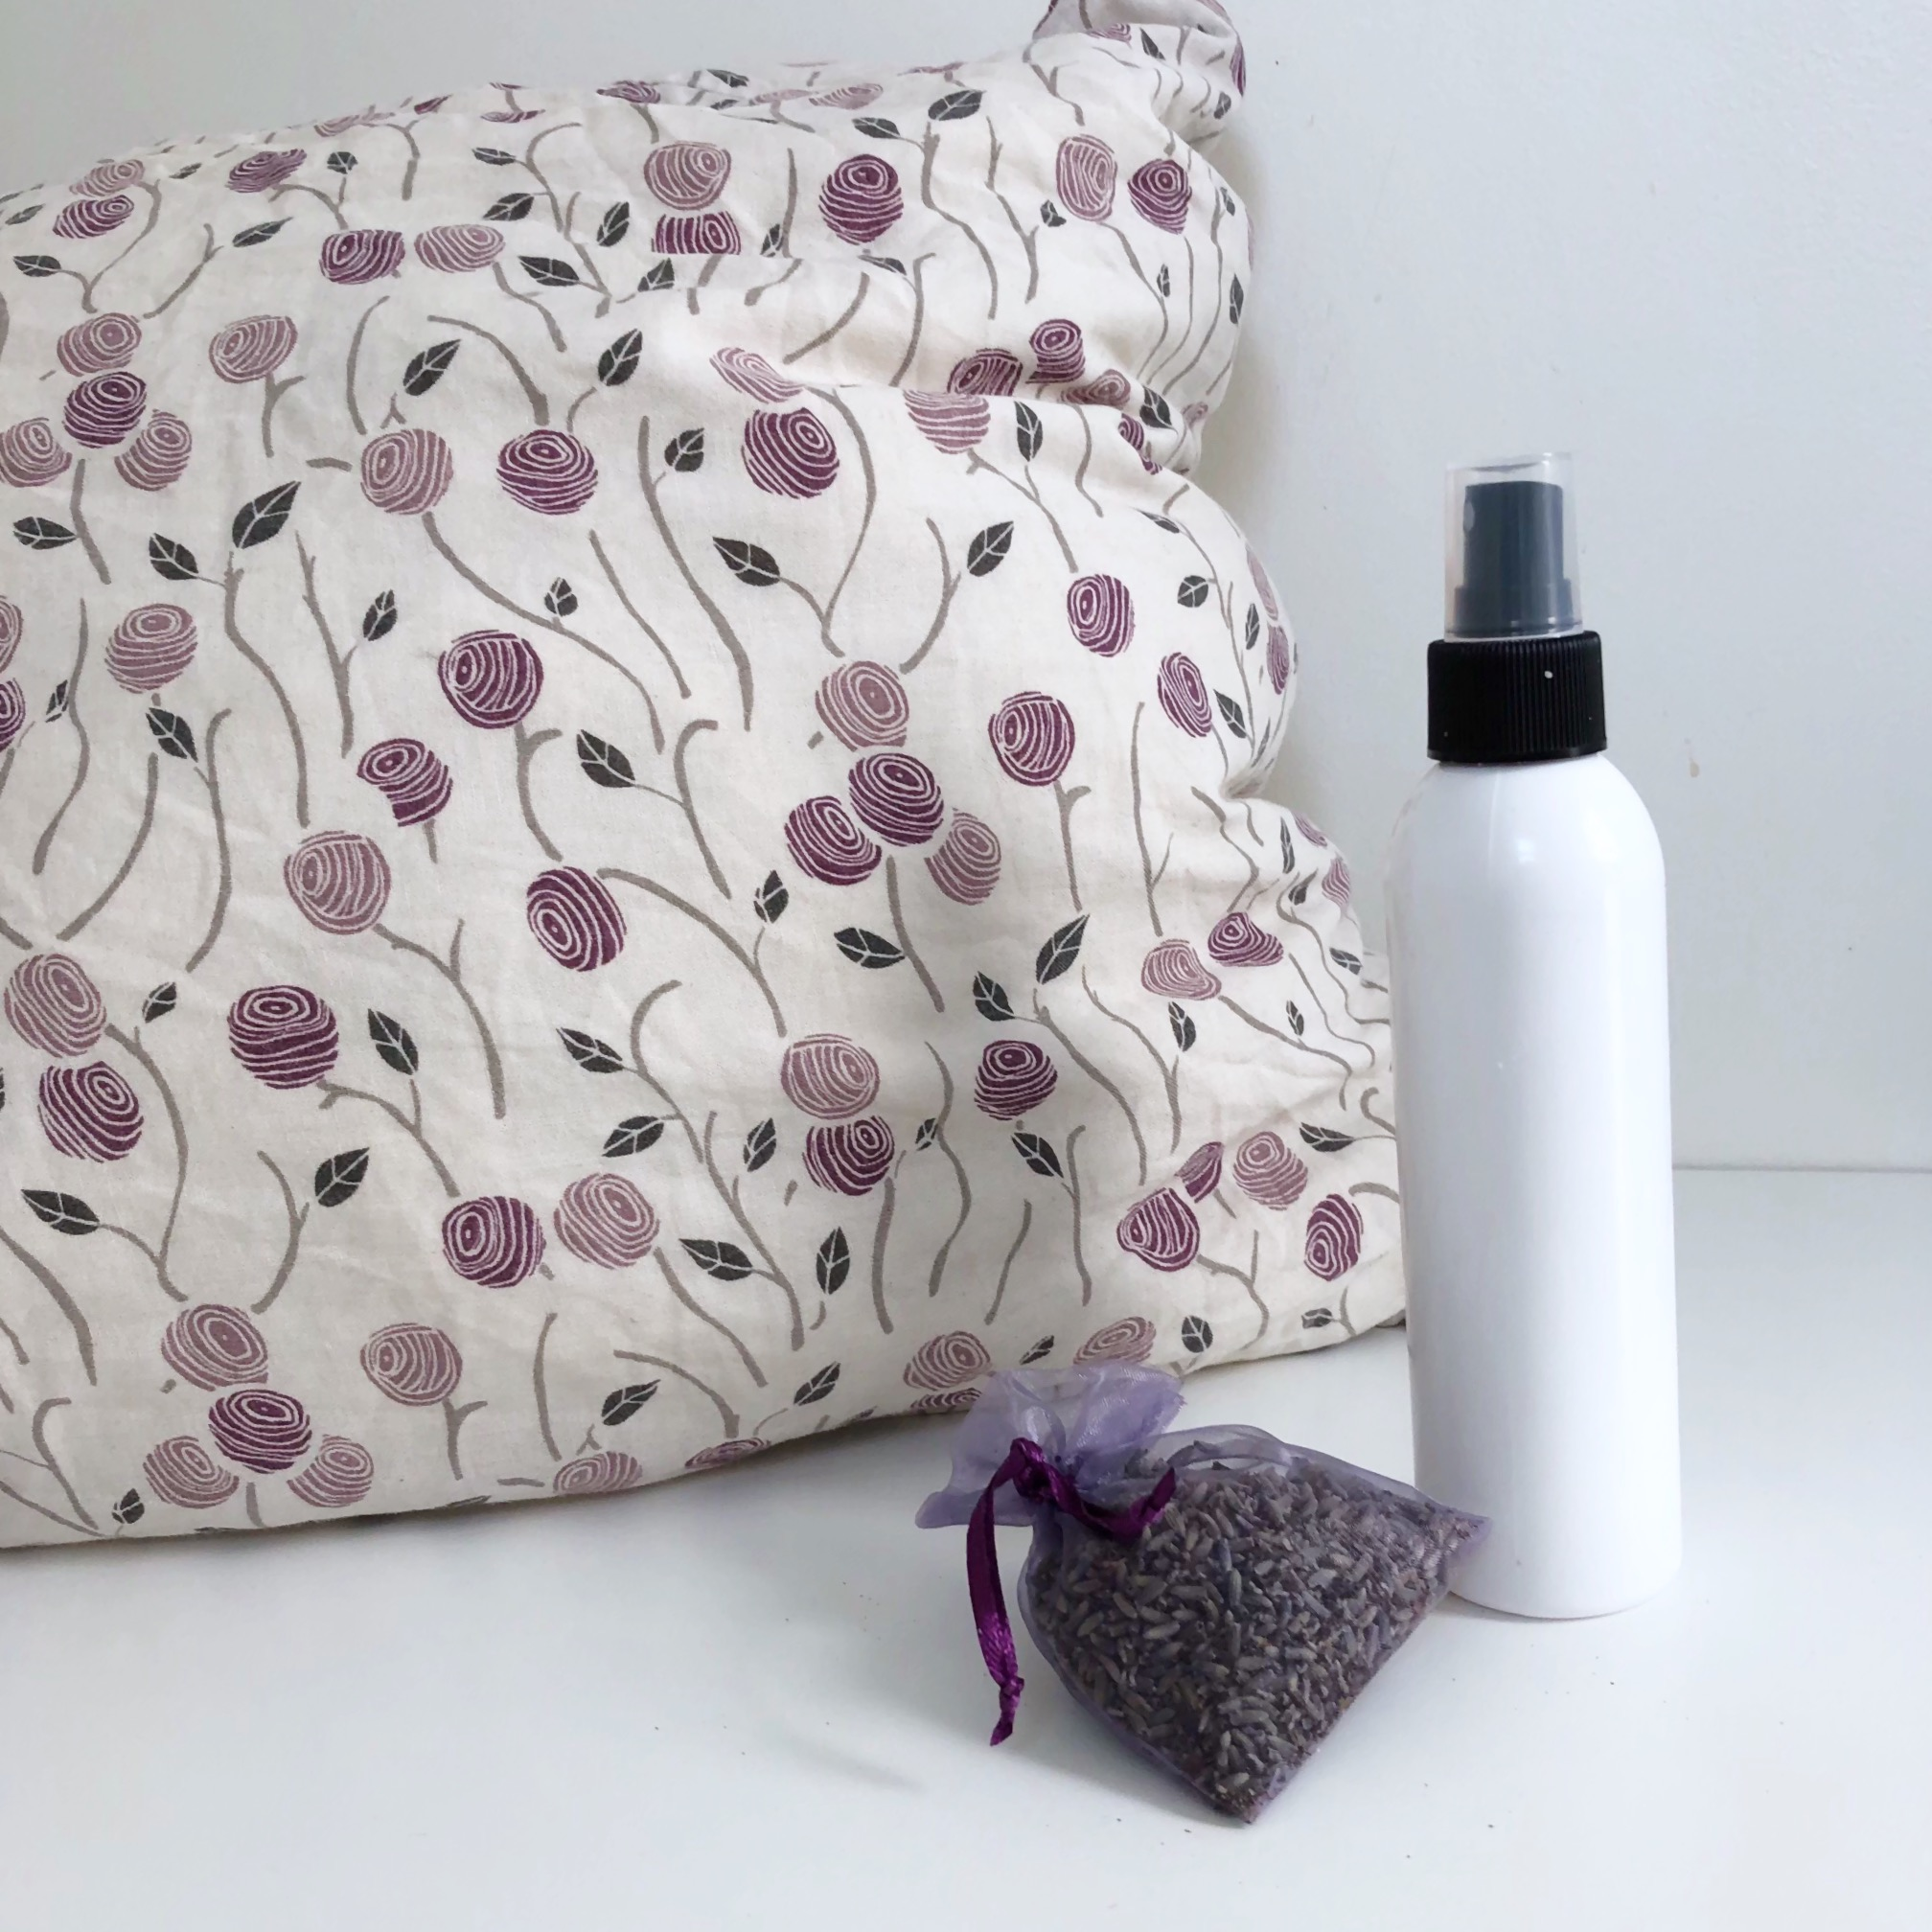 sweet dreams pillow spray for the